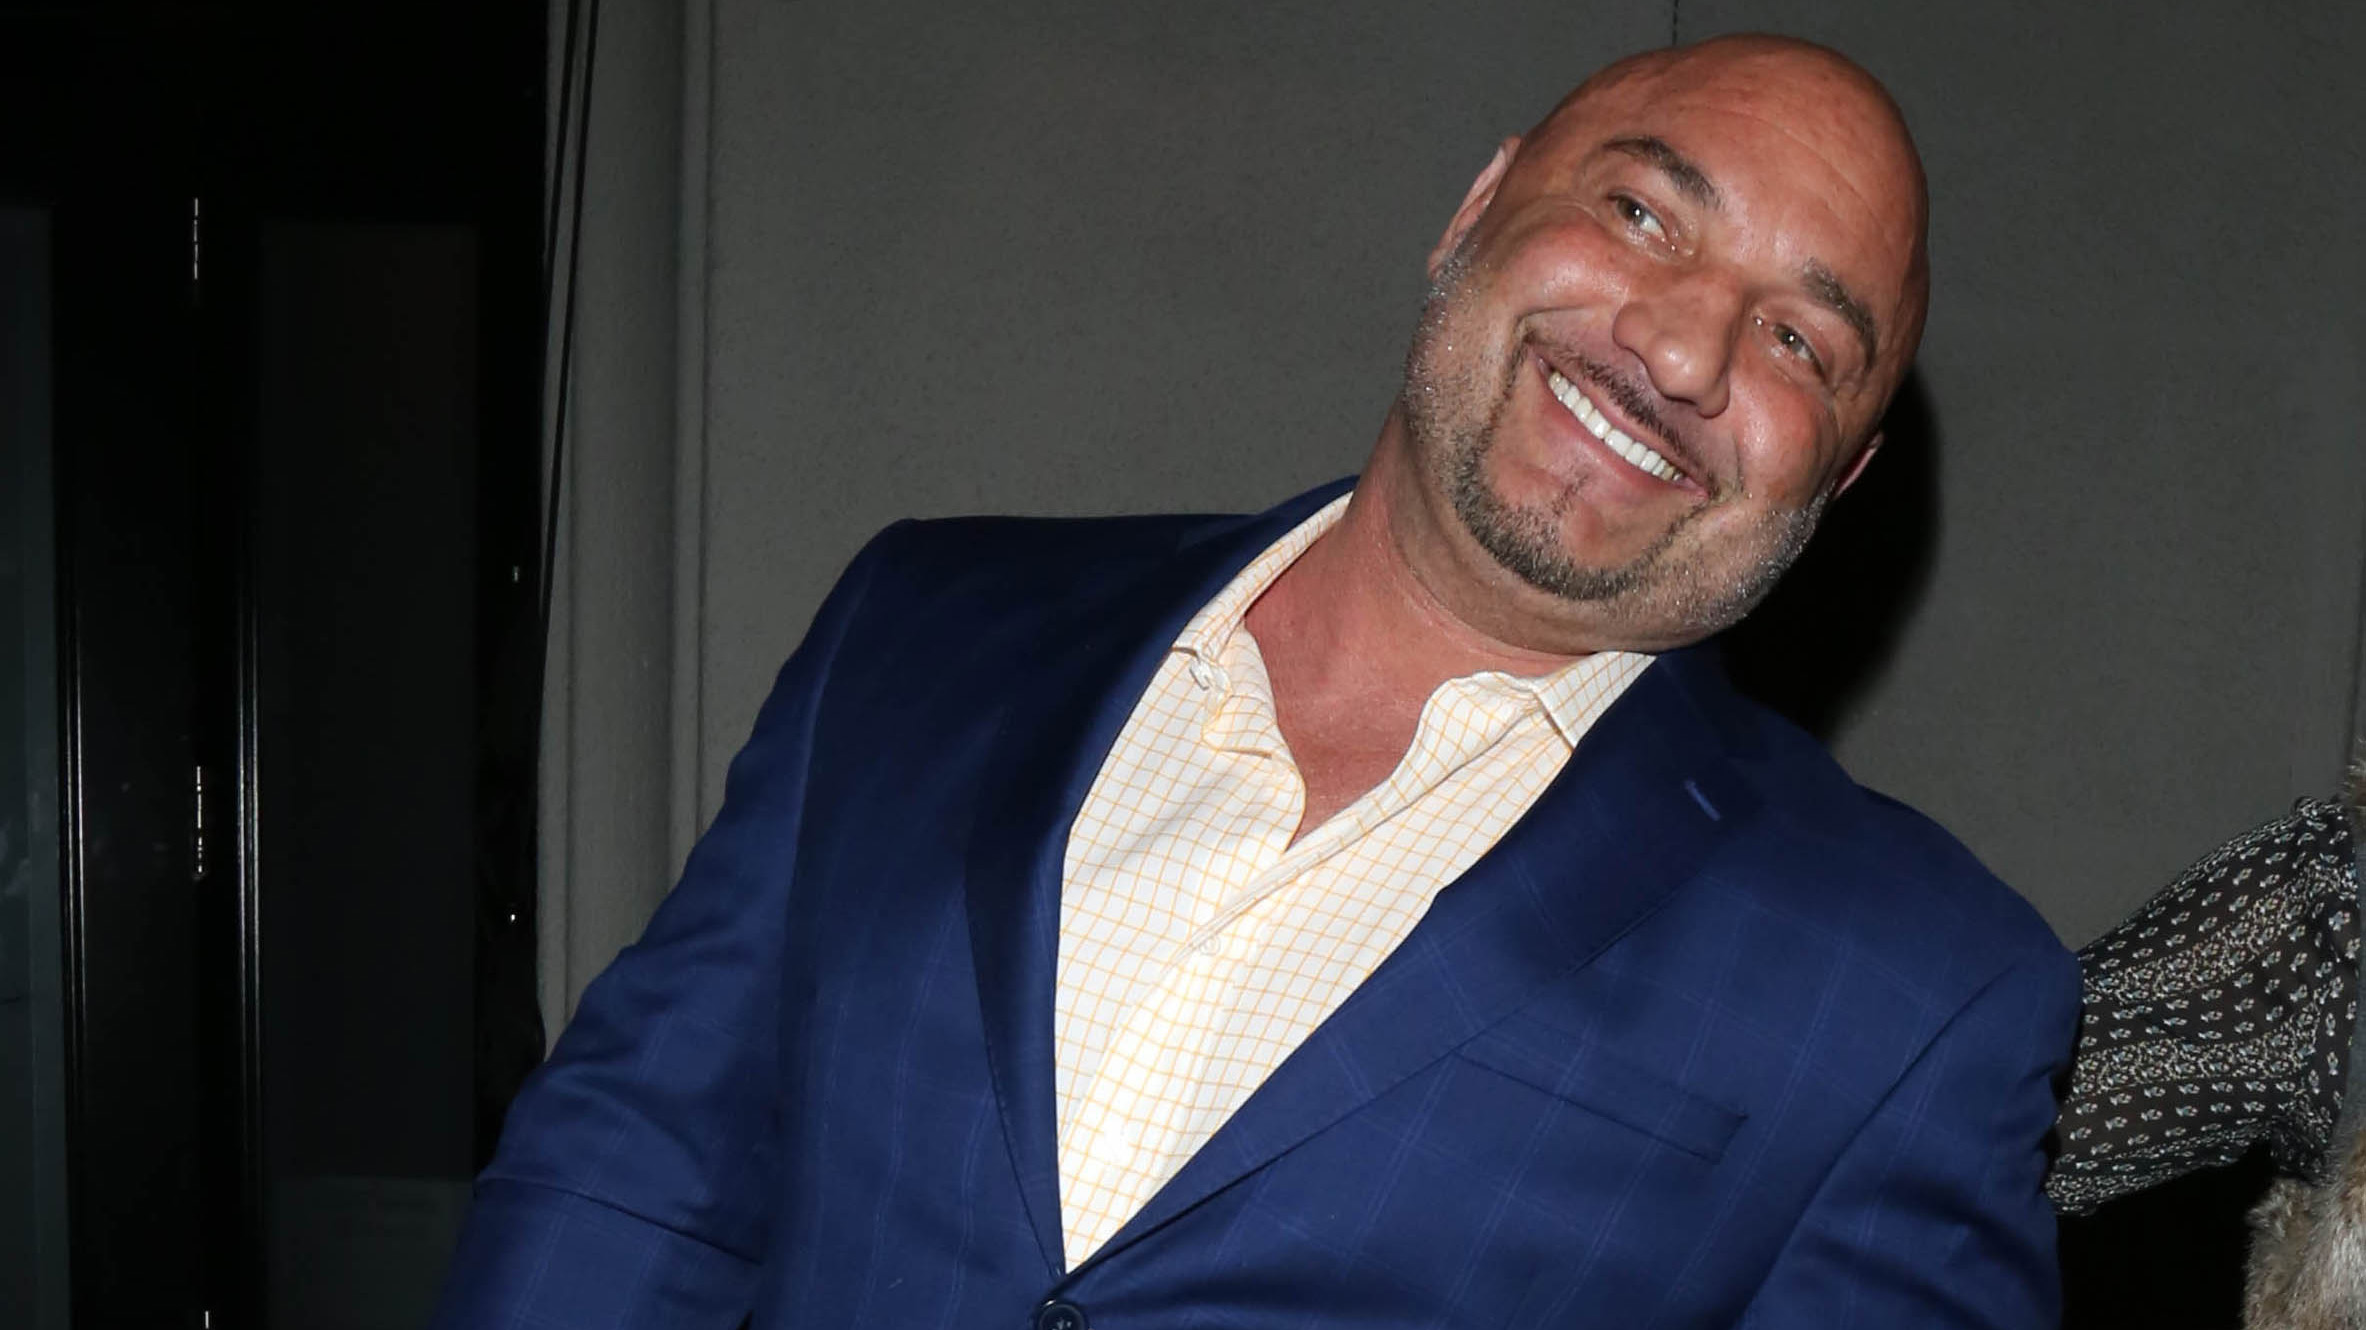 NFL officiating can be fixed with troops as refs, Jay Glazer says